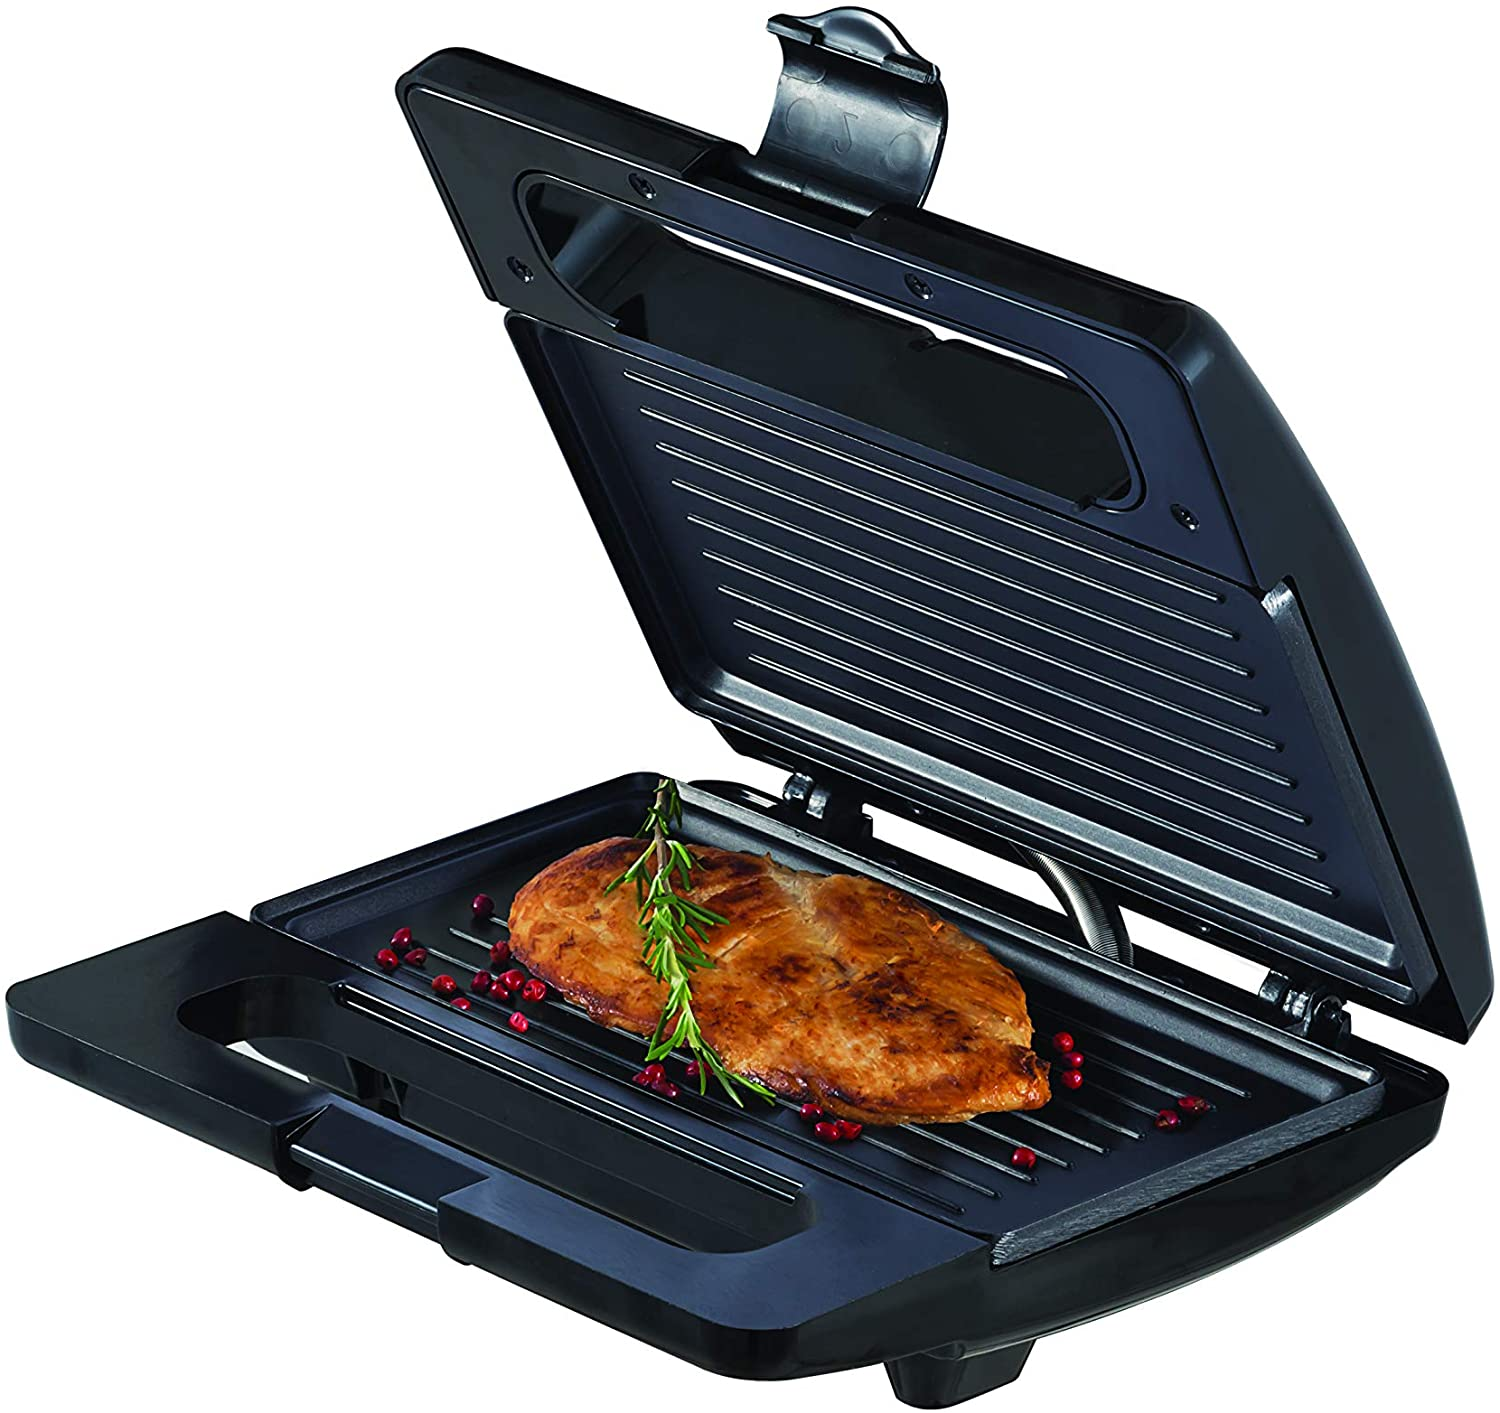 Grill e Sanduicheira Gs750 127V Black & Decker